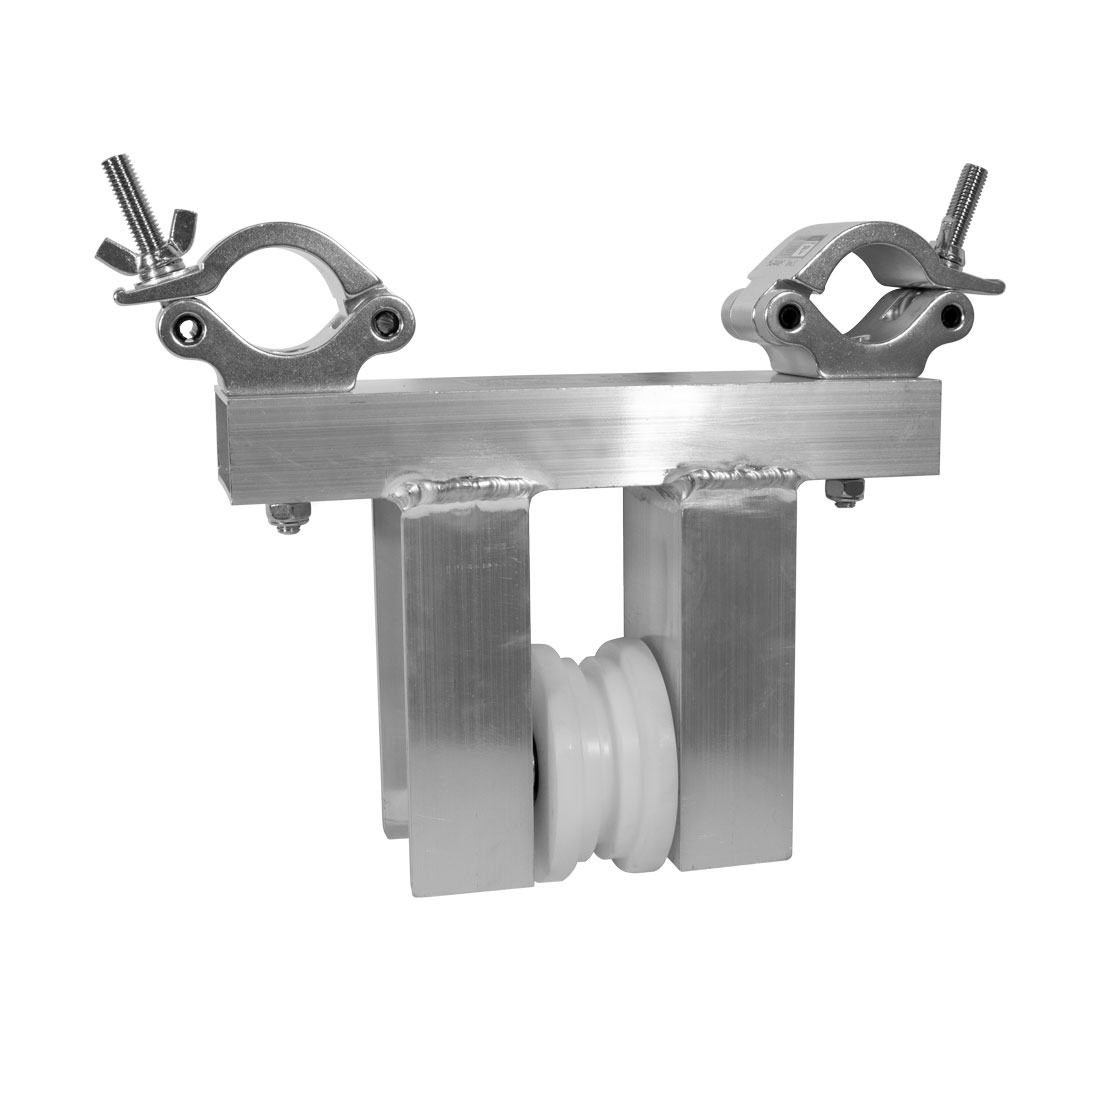 DT Pulley